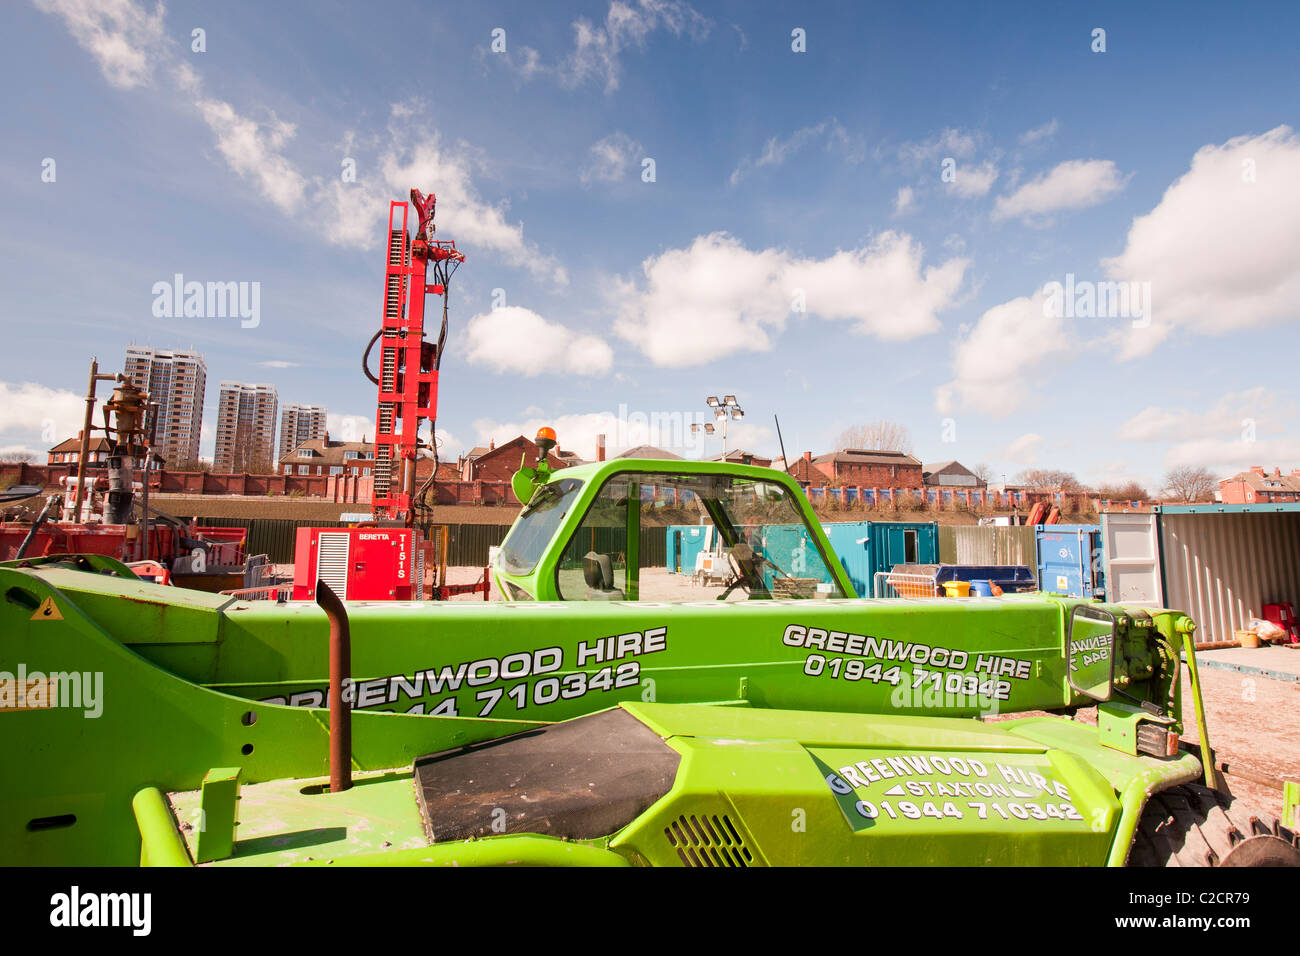 A geothermal energy project by Newcastle University, funded by the Dept of Energy and Climate Change. - Stock Image